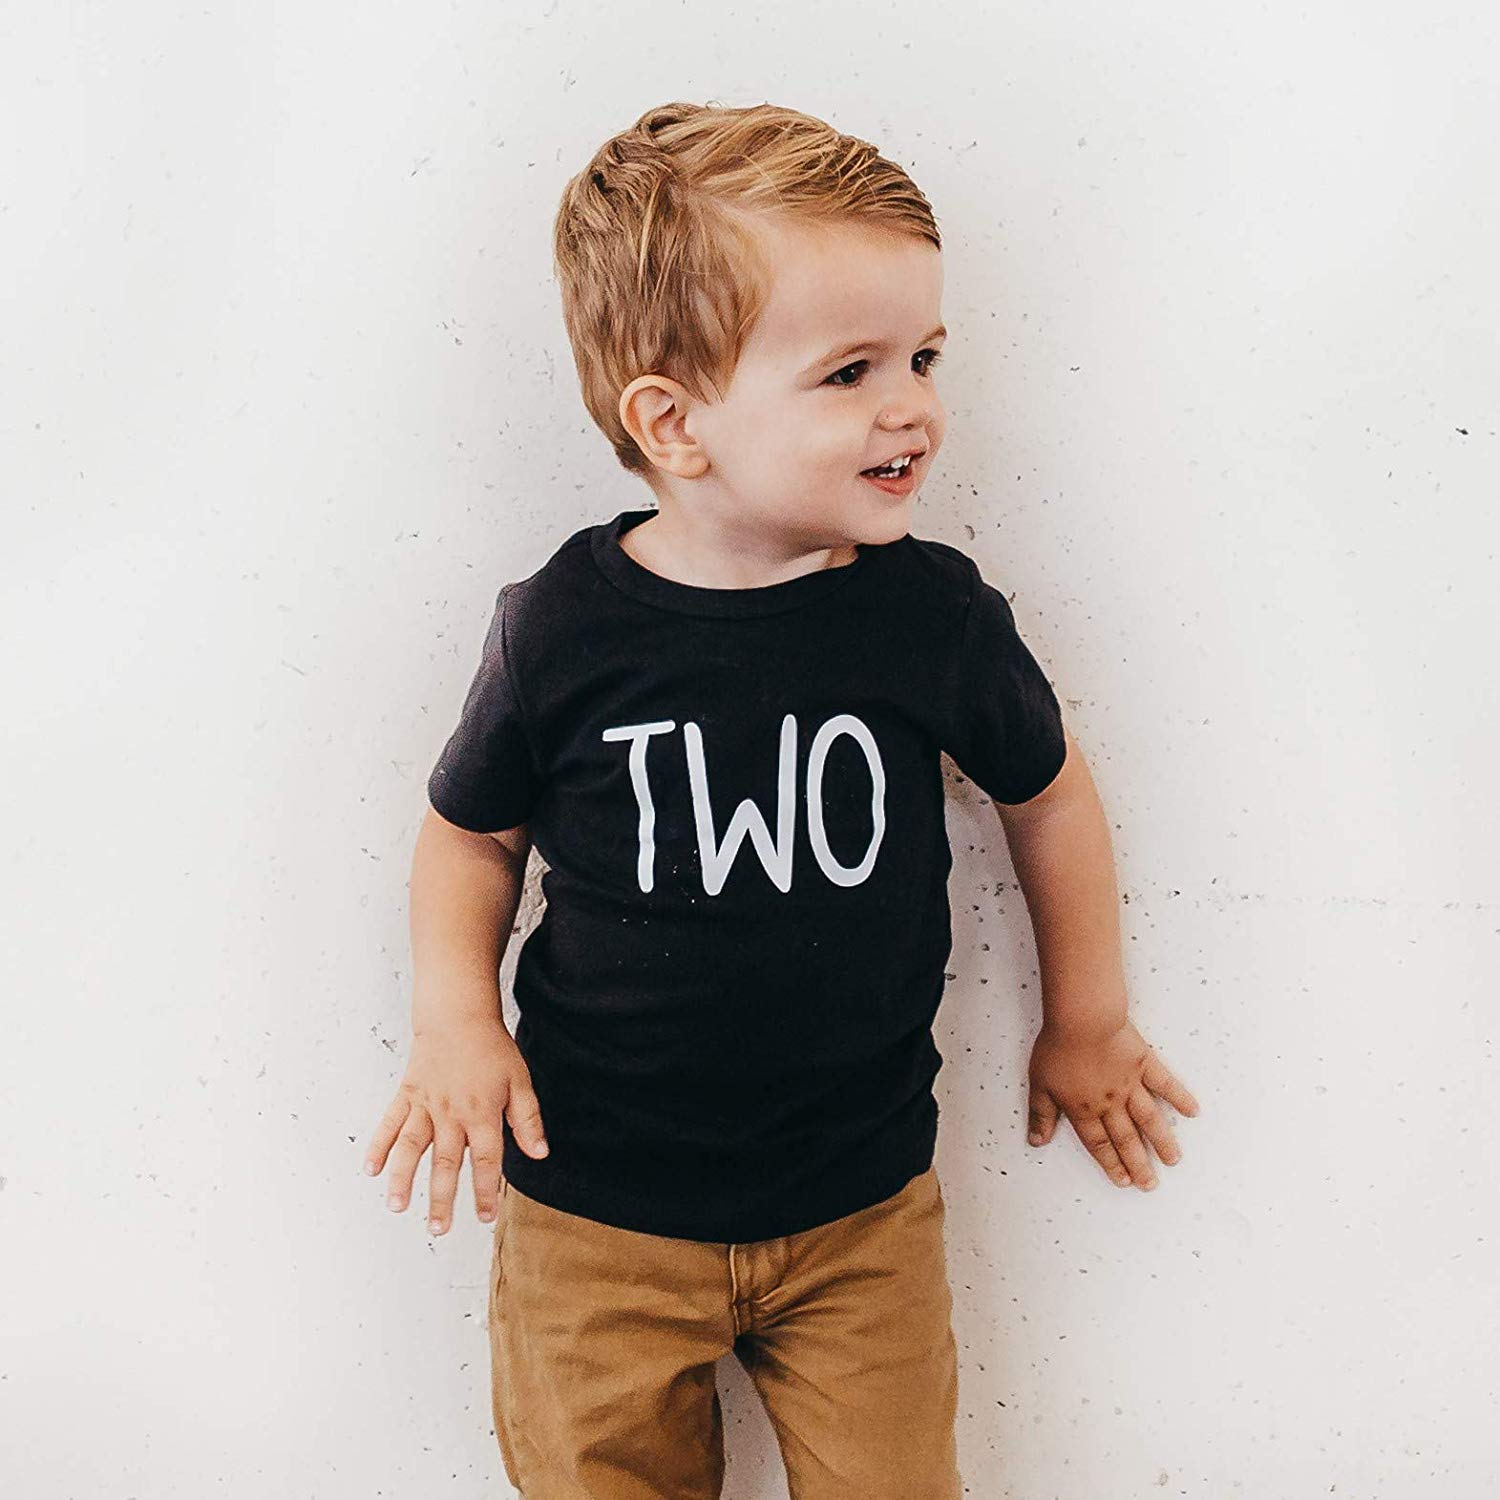 Cheap 2 Year Old Birthday Shirt Boy Find 2 Year Old Birthday Shirt